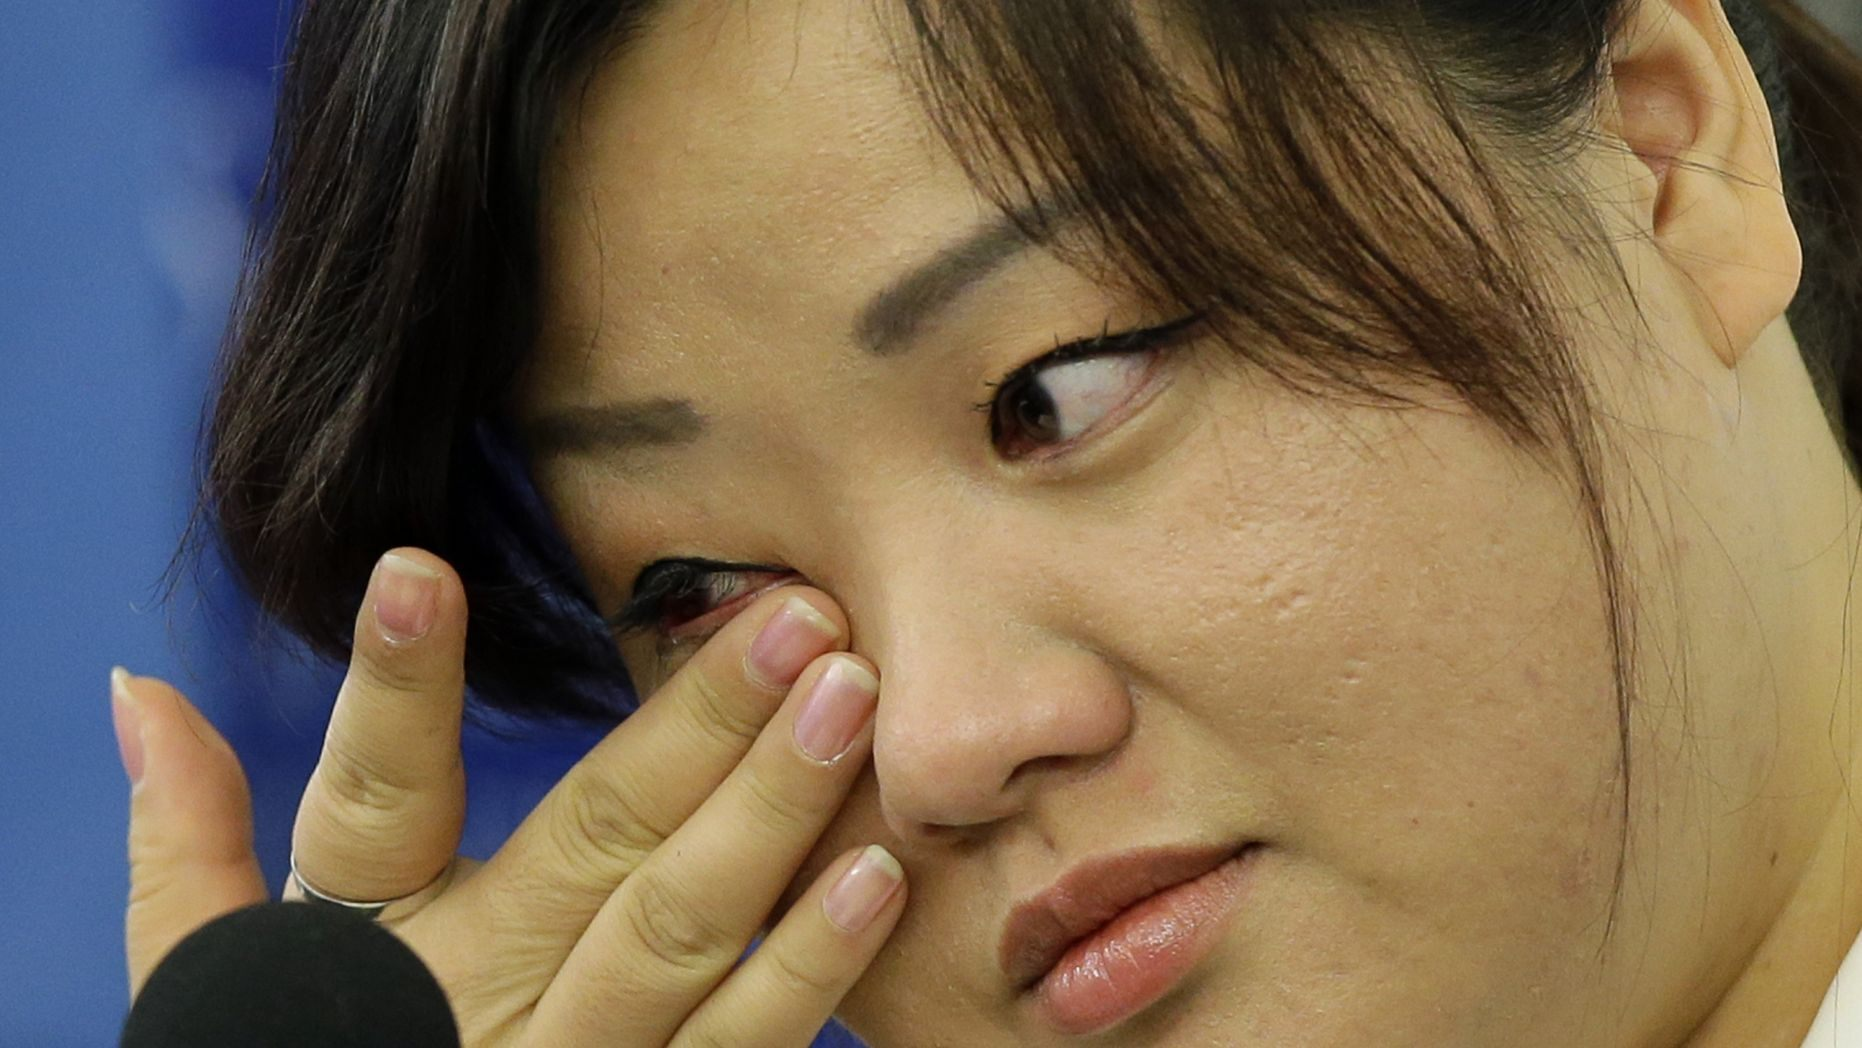 Jin hye Jo wipes a tear as she testifies in Washington D.C. during a hearing of the UN-mandated Commission of Inquiry about human rights in North Korea.